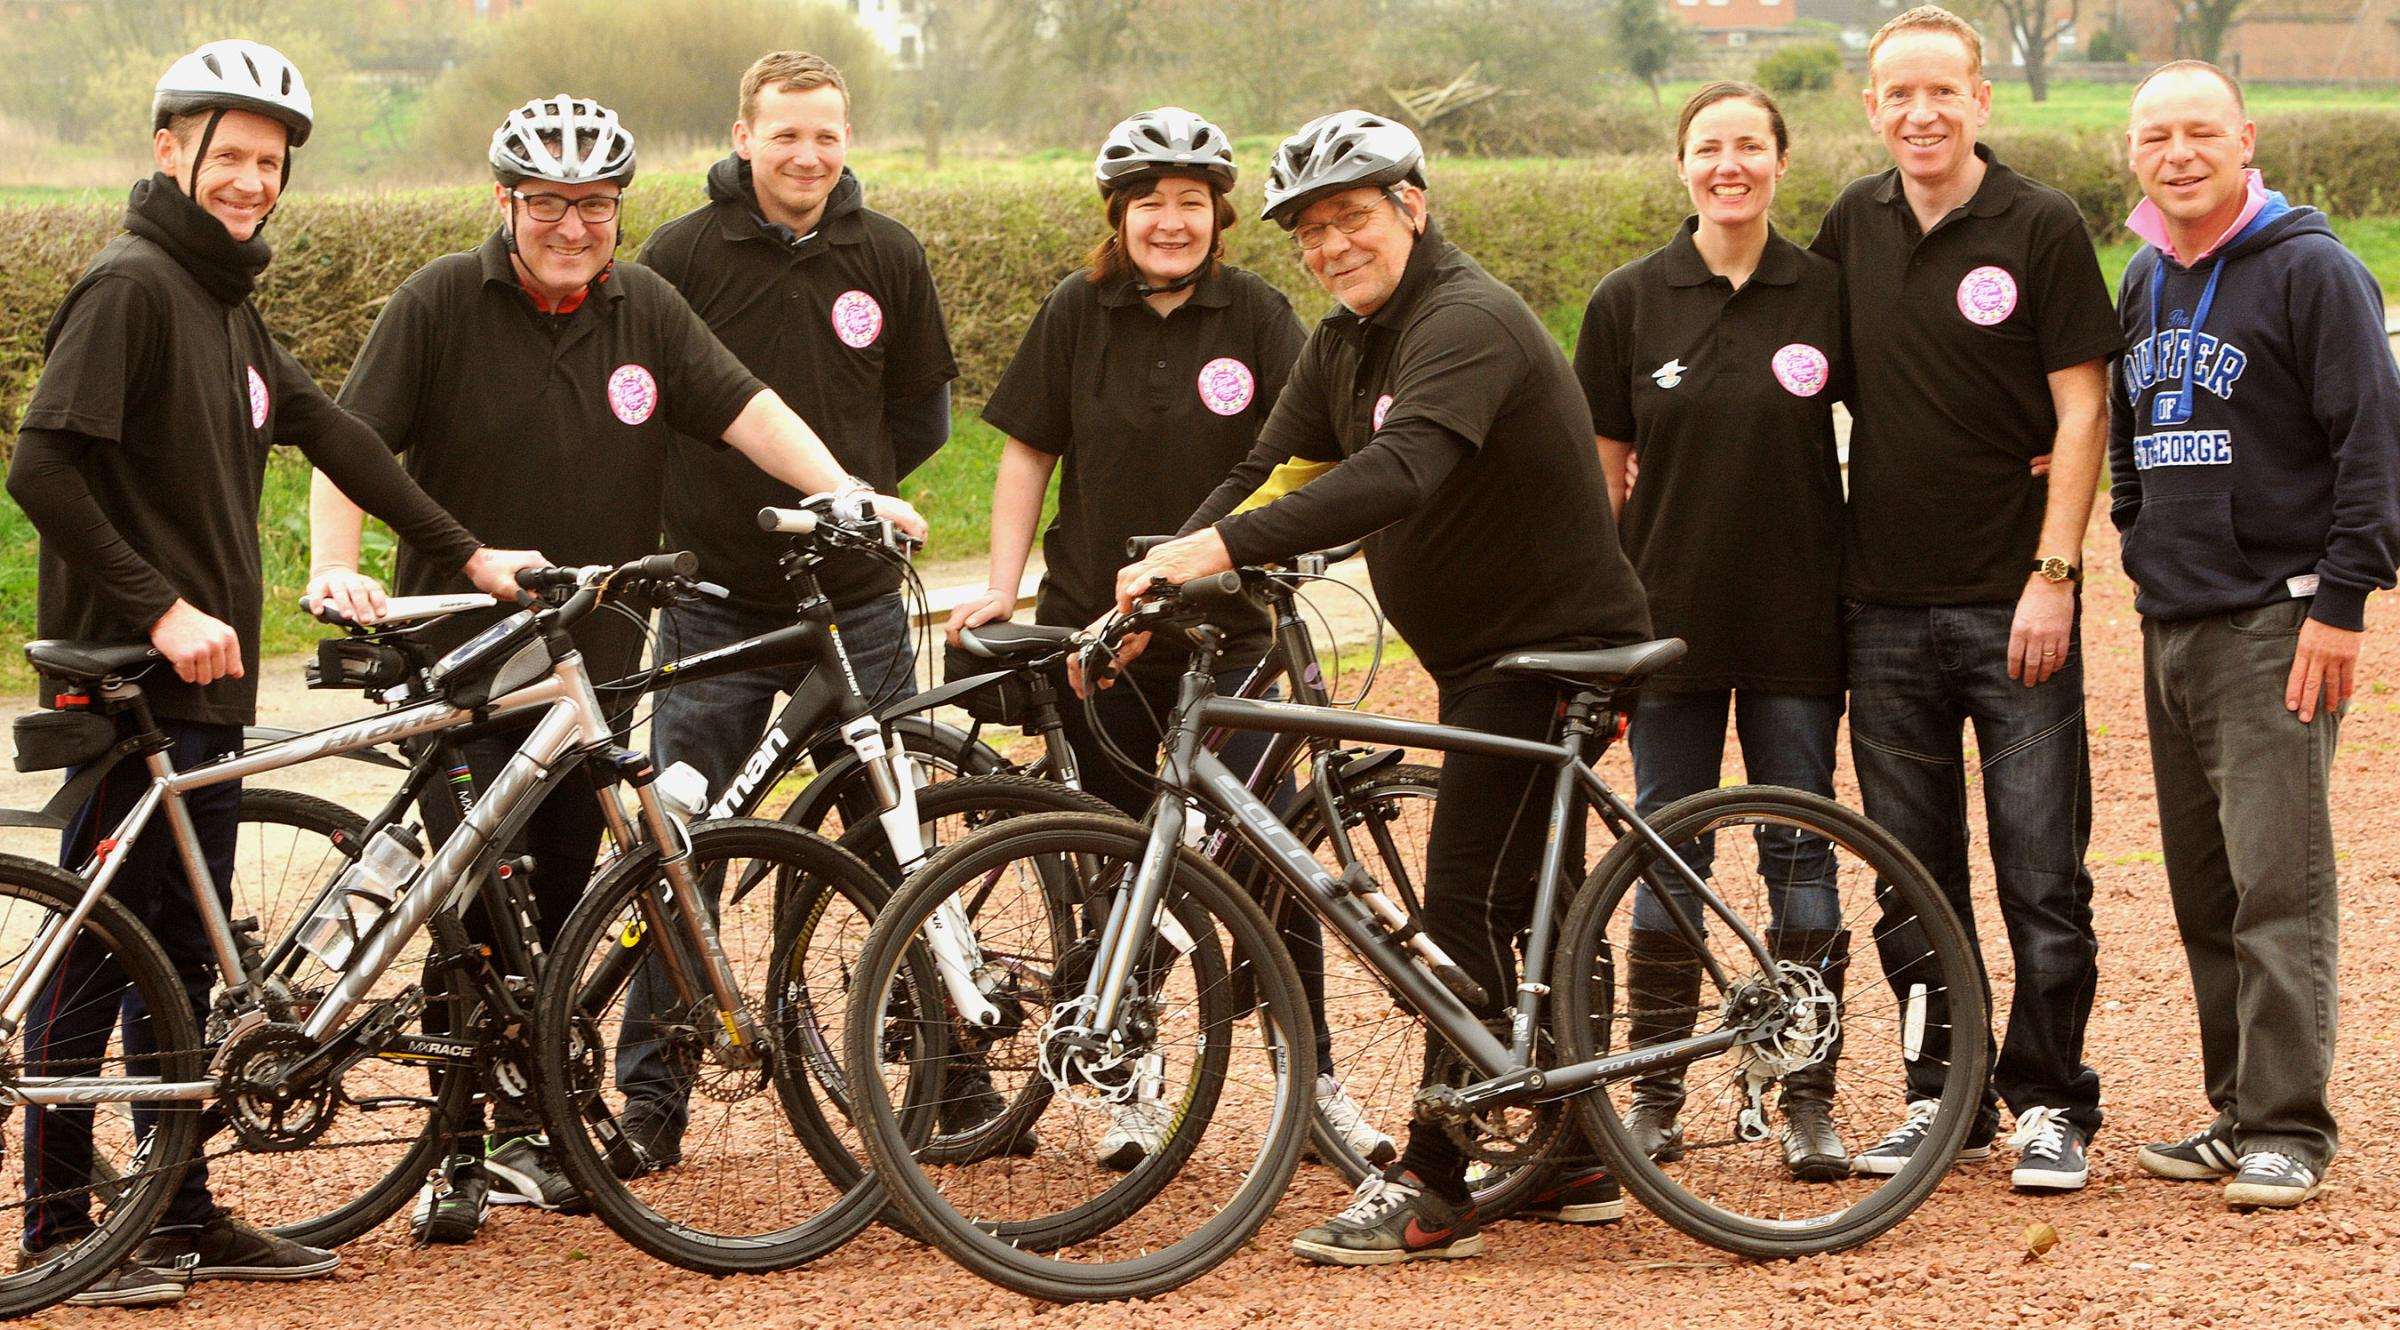 EASY RIDERS: From left, Peter Walker, Mark Whitaker, Daniel Sutcliffe, Sarah Smith, James Atkinson, Gill and Jim Murphy (who along with Sarah Smith are founders of Circle of Hope)